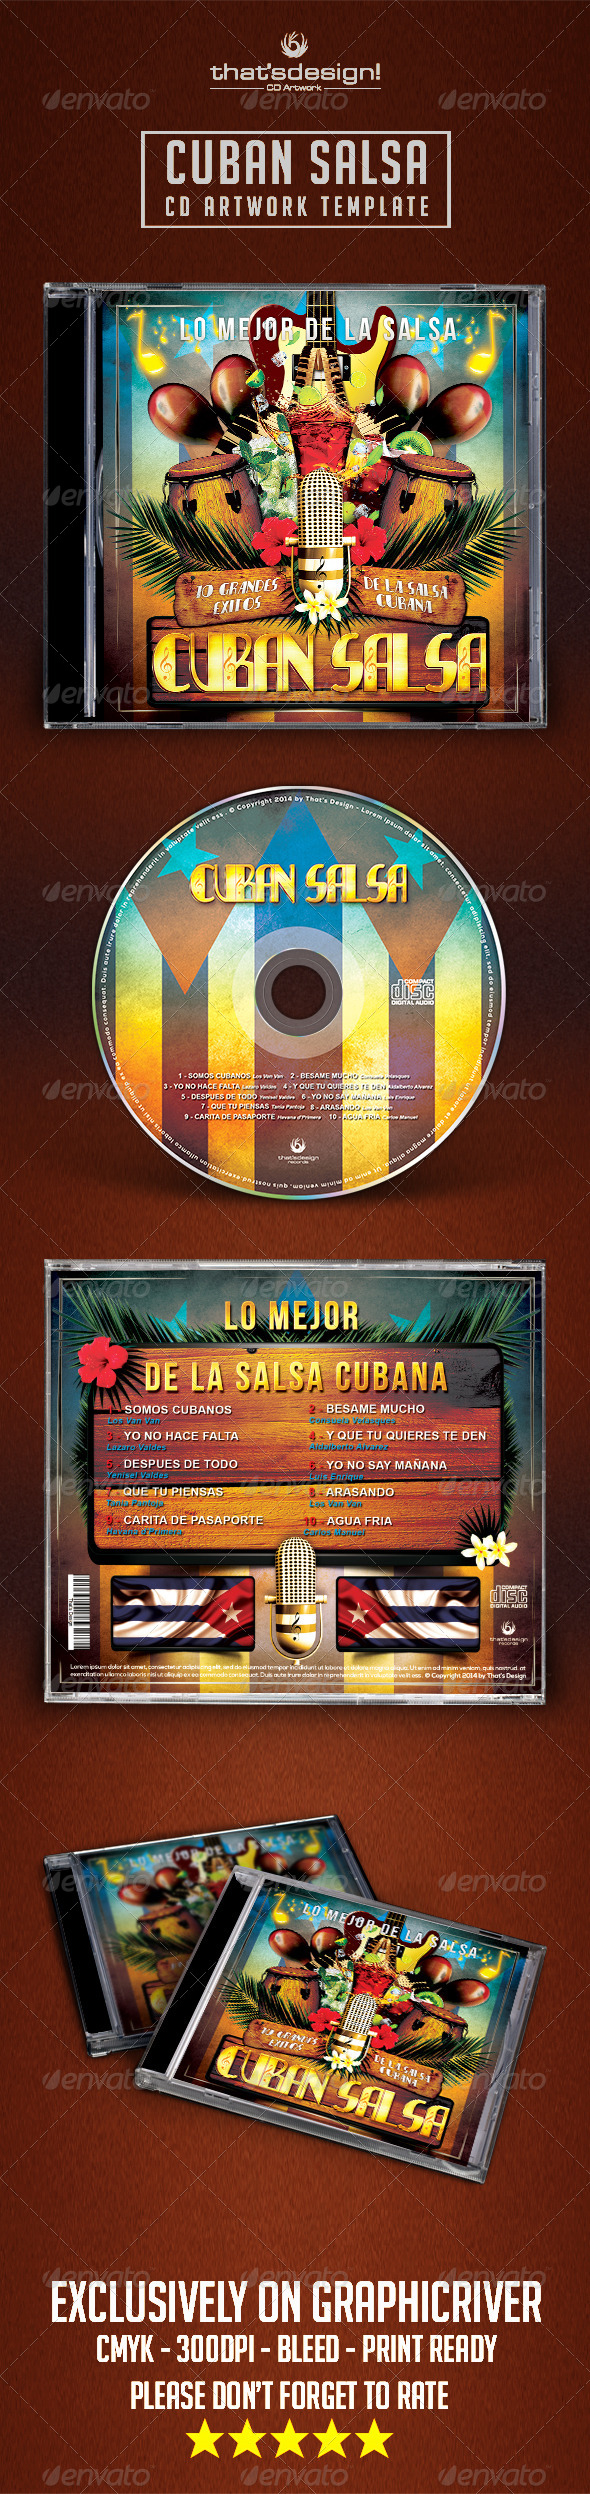 GraphicRiver Cuban Salsa CD Artwork Template 8070170